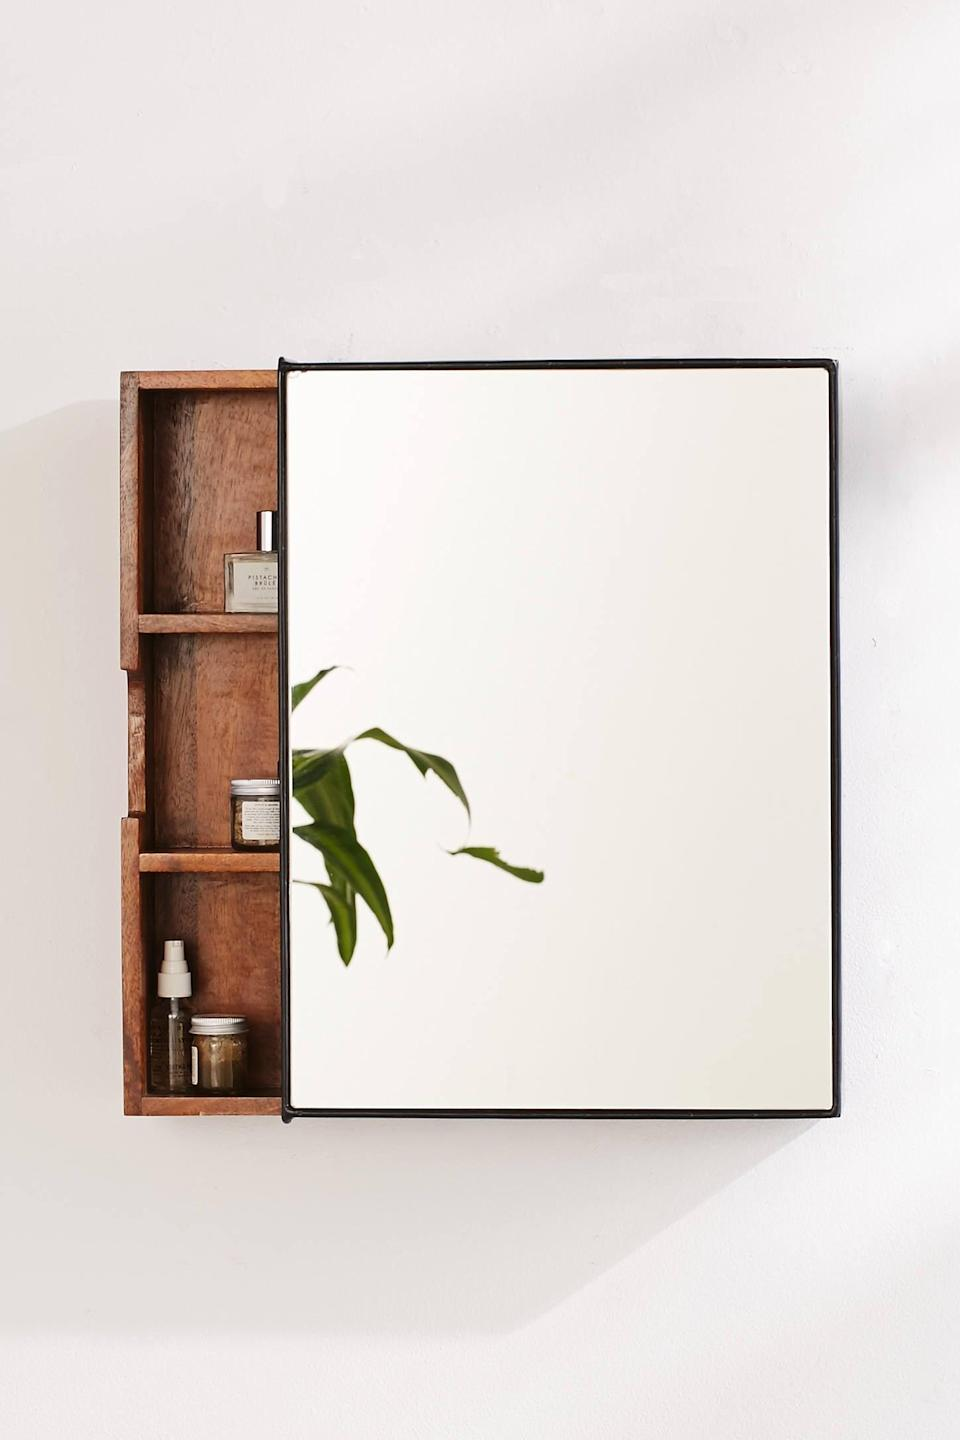 "<p>Store your favorite products in this <a href=""https://www.popsugar.com/buy/Plymouth-Sliding-Storage-Mirror-551627?p_name=Plymouth%20Sliding%20Storage%20Mirror&retailer=urbanoutfitters.com&pid=551627&price=99&evar1=casa%3Aus&evar9=47251564&evar98=https%3A%2F%2Fwww.popsugar.com%2Fhome%2Fphoto-gallery%2F47251564%2Fimage%2F47252505%2FPlymouth-Sliding-Storage-Mirror&list1=cleaning%2Corganization%2Cspring%20cleaning%2Csmall%20space%20living%2Cbathrooms%2Chome%20organization&prop13=mobile&pdata=1"" class=""link rapid-noclick-resp"" rel=""nofollow noopener"" target=""_blank"" data-ylk=""slk:Plymouth Sliding Storage Mirror"">Plymouth Sliding Storage Mirror</a> ($99, originally $149).</p>"